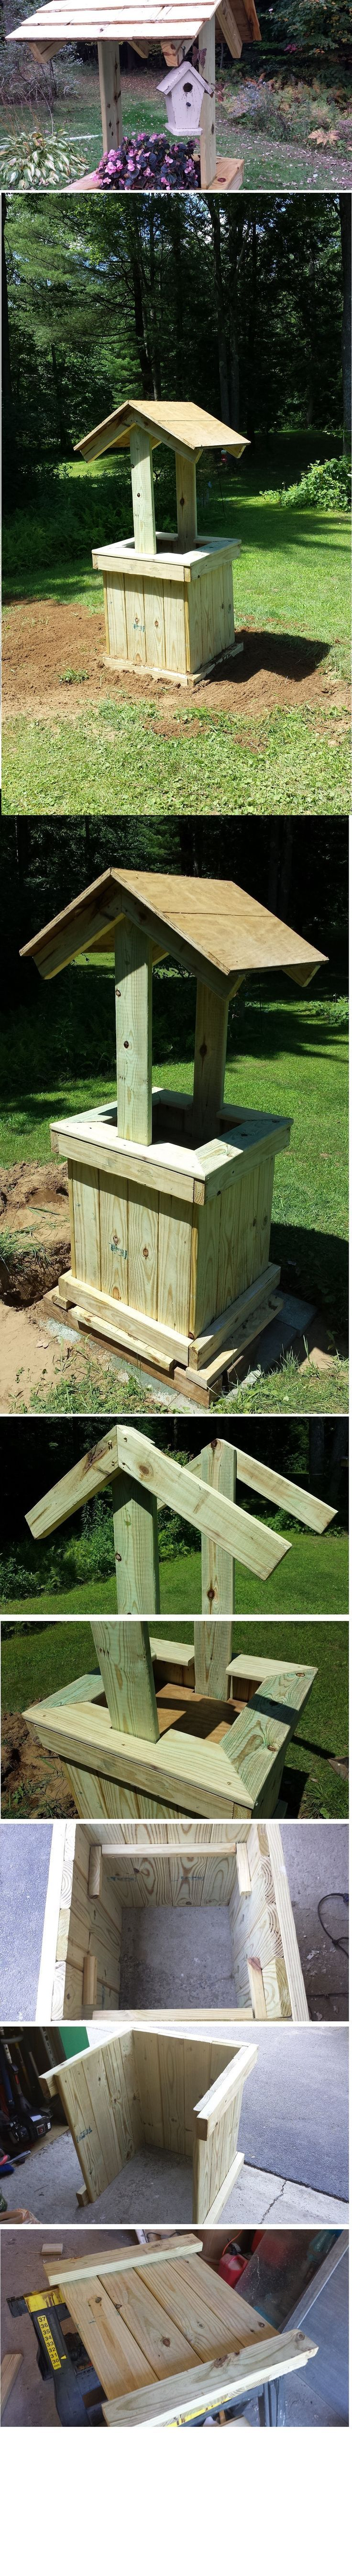 15 best Septic covers images on Pinterest | Backyard ideas ...